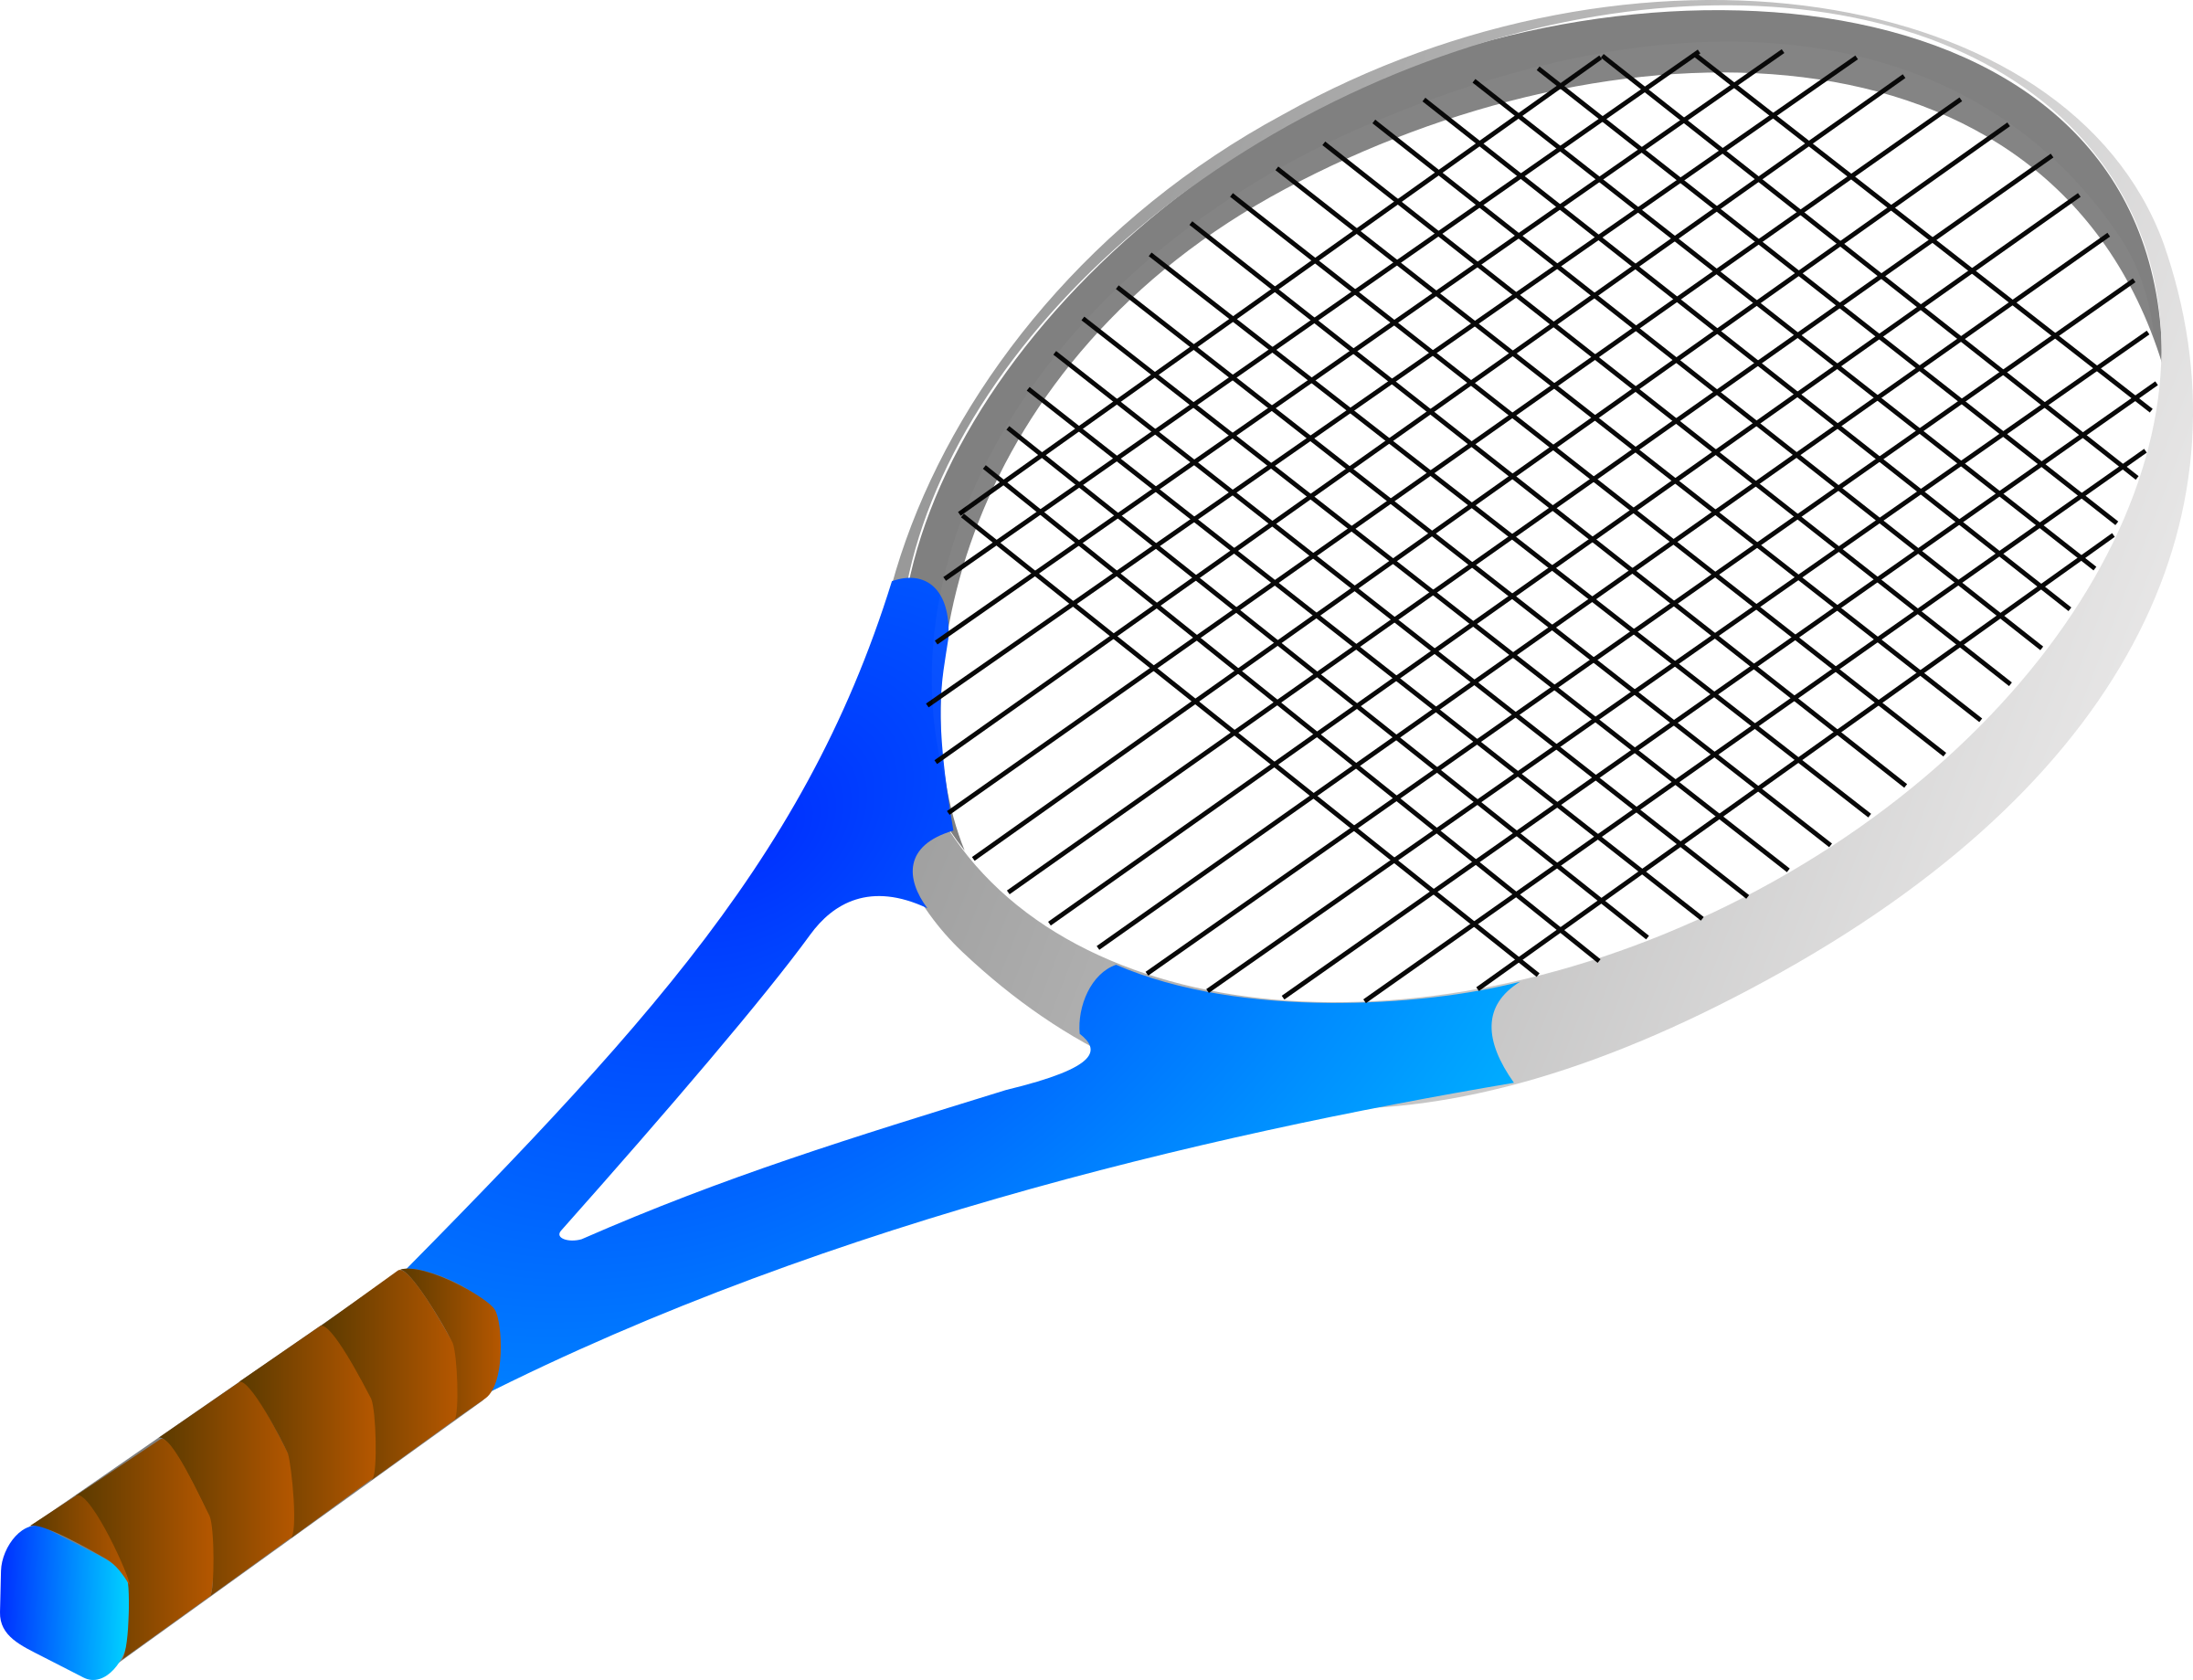 Png images free download. Clipart people tennis